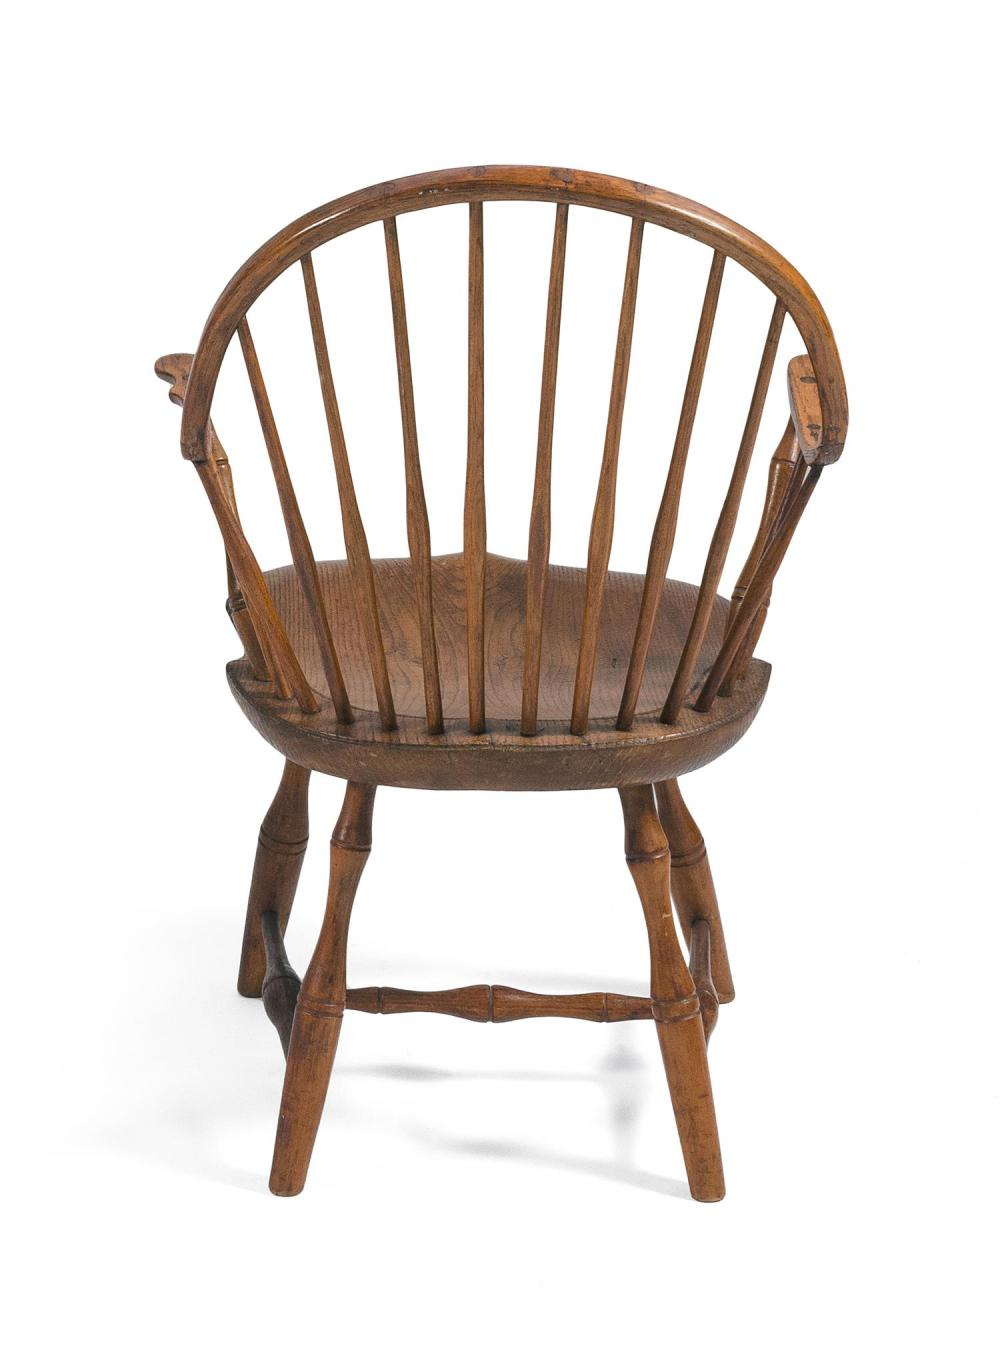 WINDSOR CONTINUOUS ARMCHAIR In ash and maple. Back height 34.25